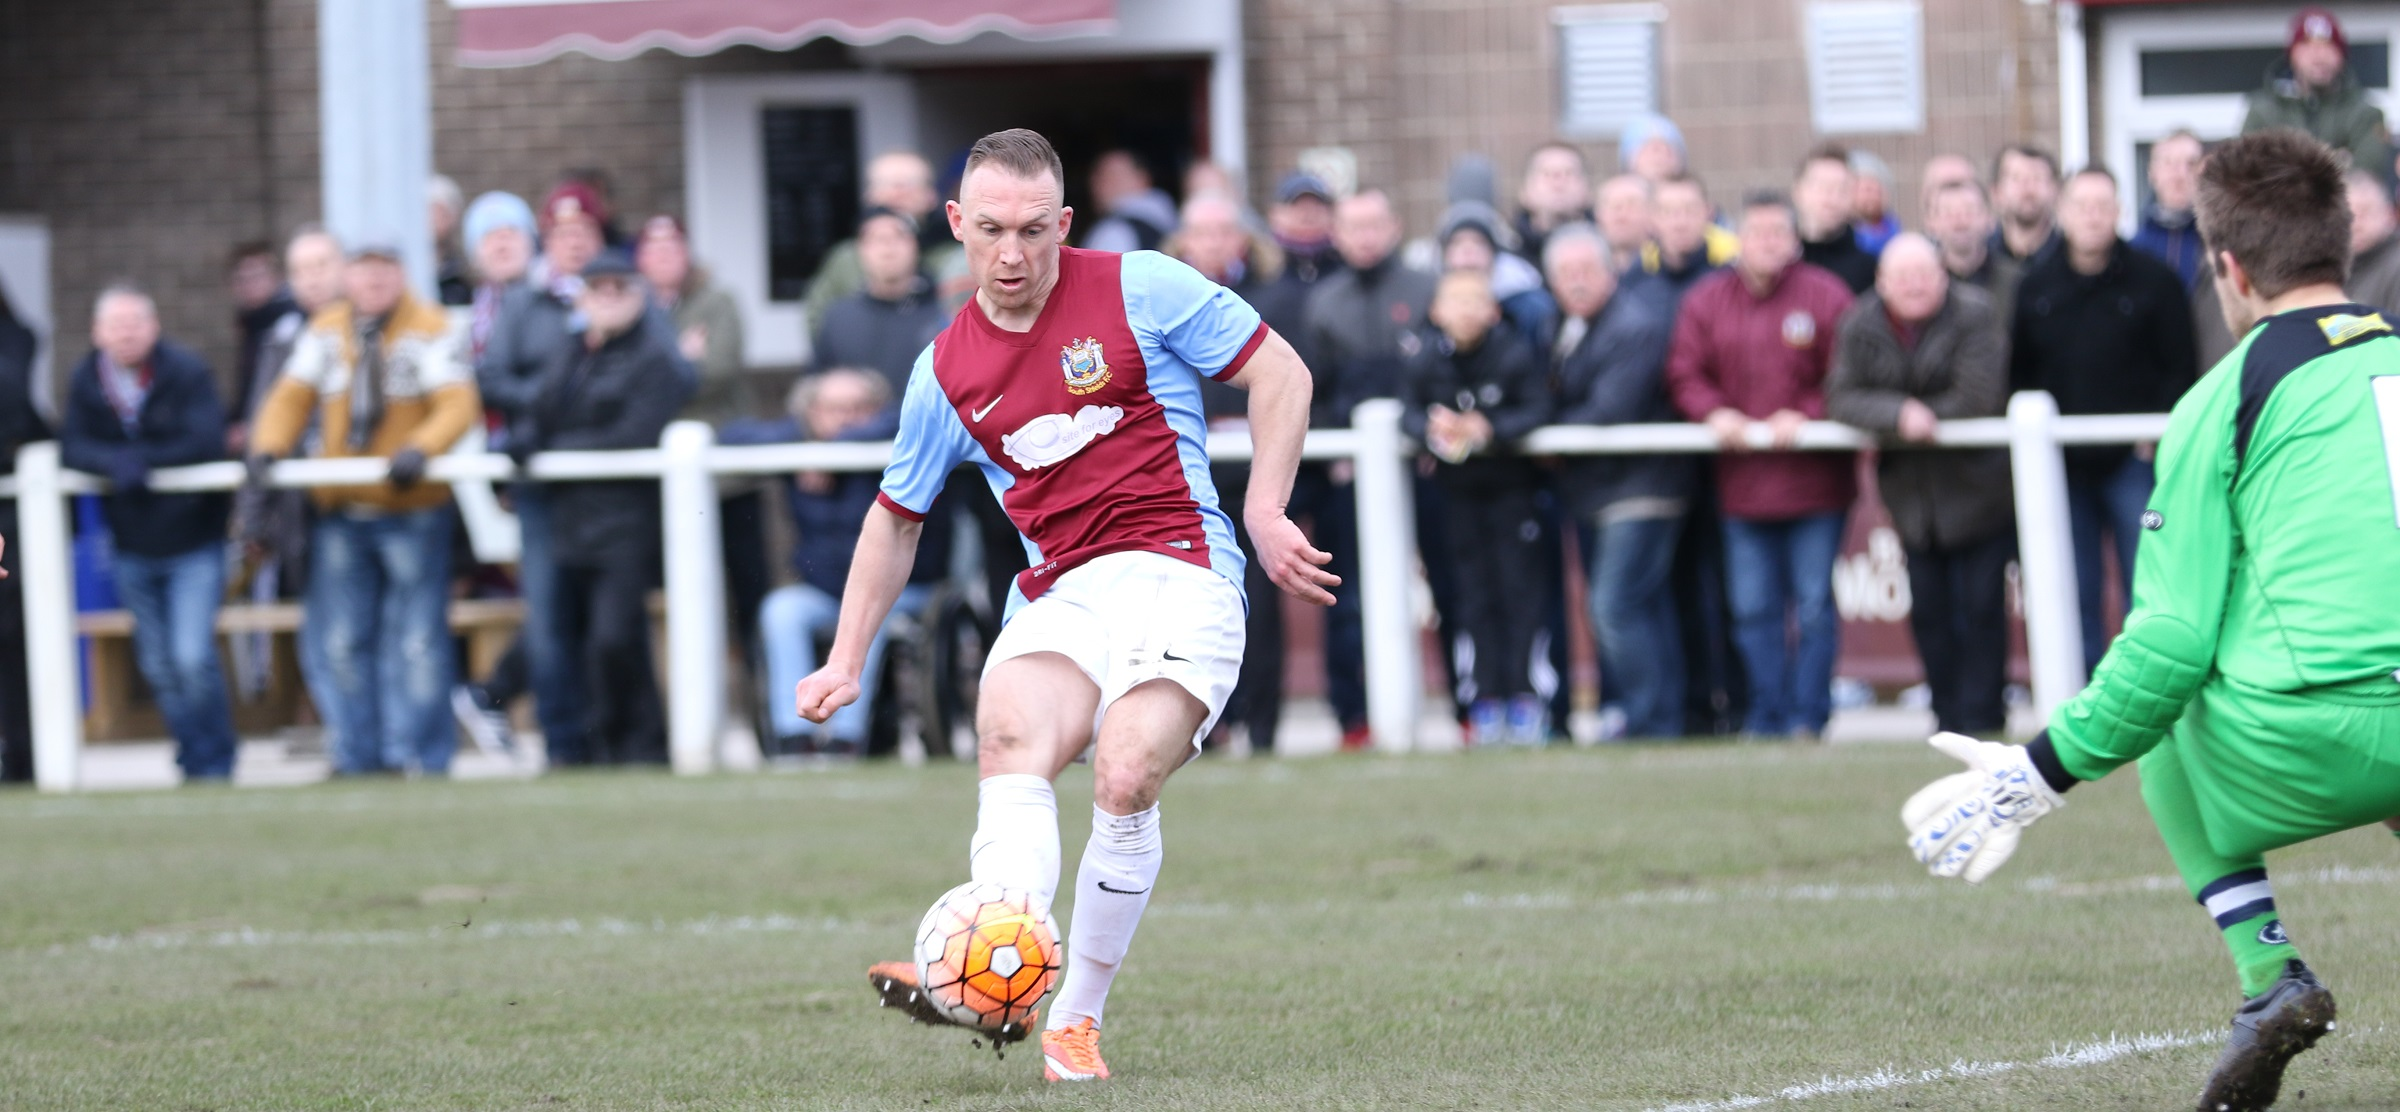 HIGHLIGHTS: South Shields 2-0 Chester-le-Street Town